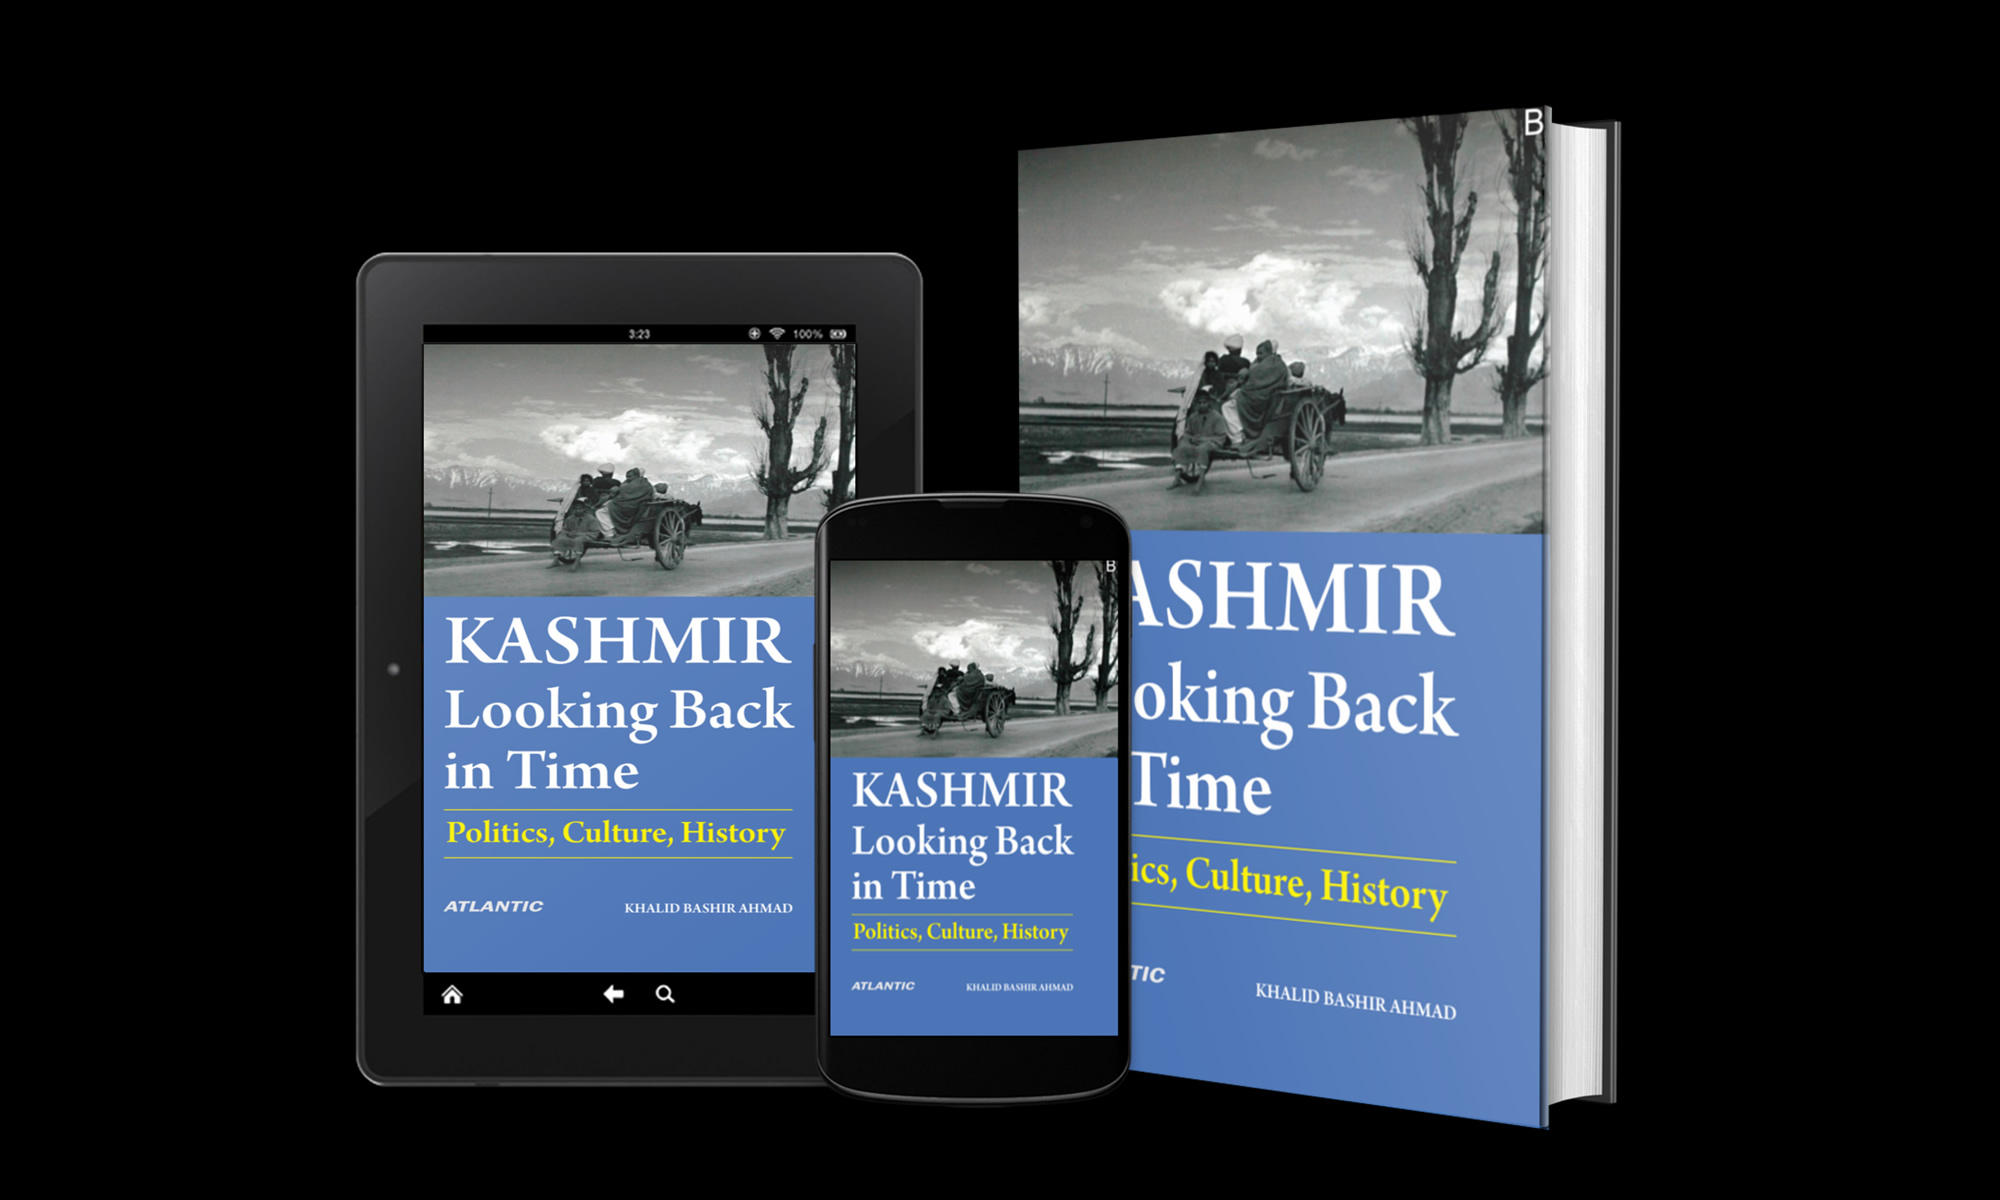 The Celluloid Years — An Excerpt from KASHMIR: Looking Back in Time - Politics, Culture, History (Atlantic, 2021) by Khalid Bashir Ahmad